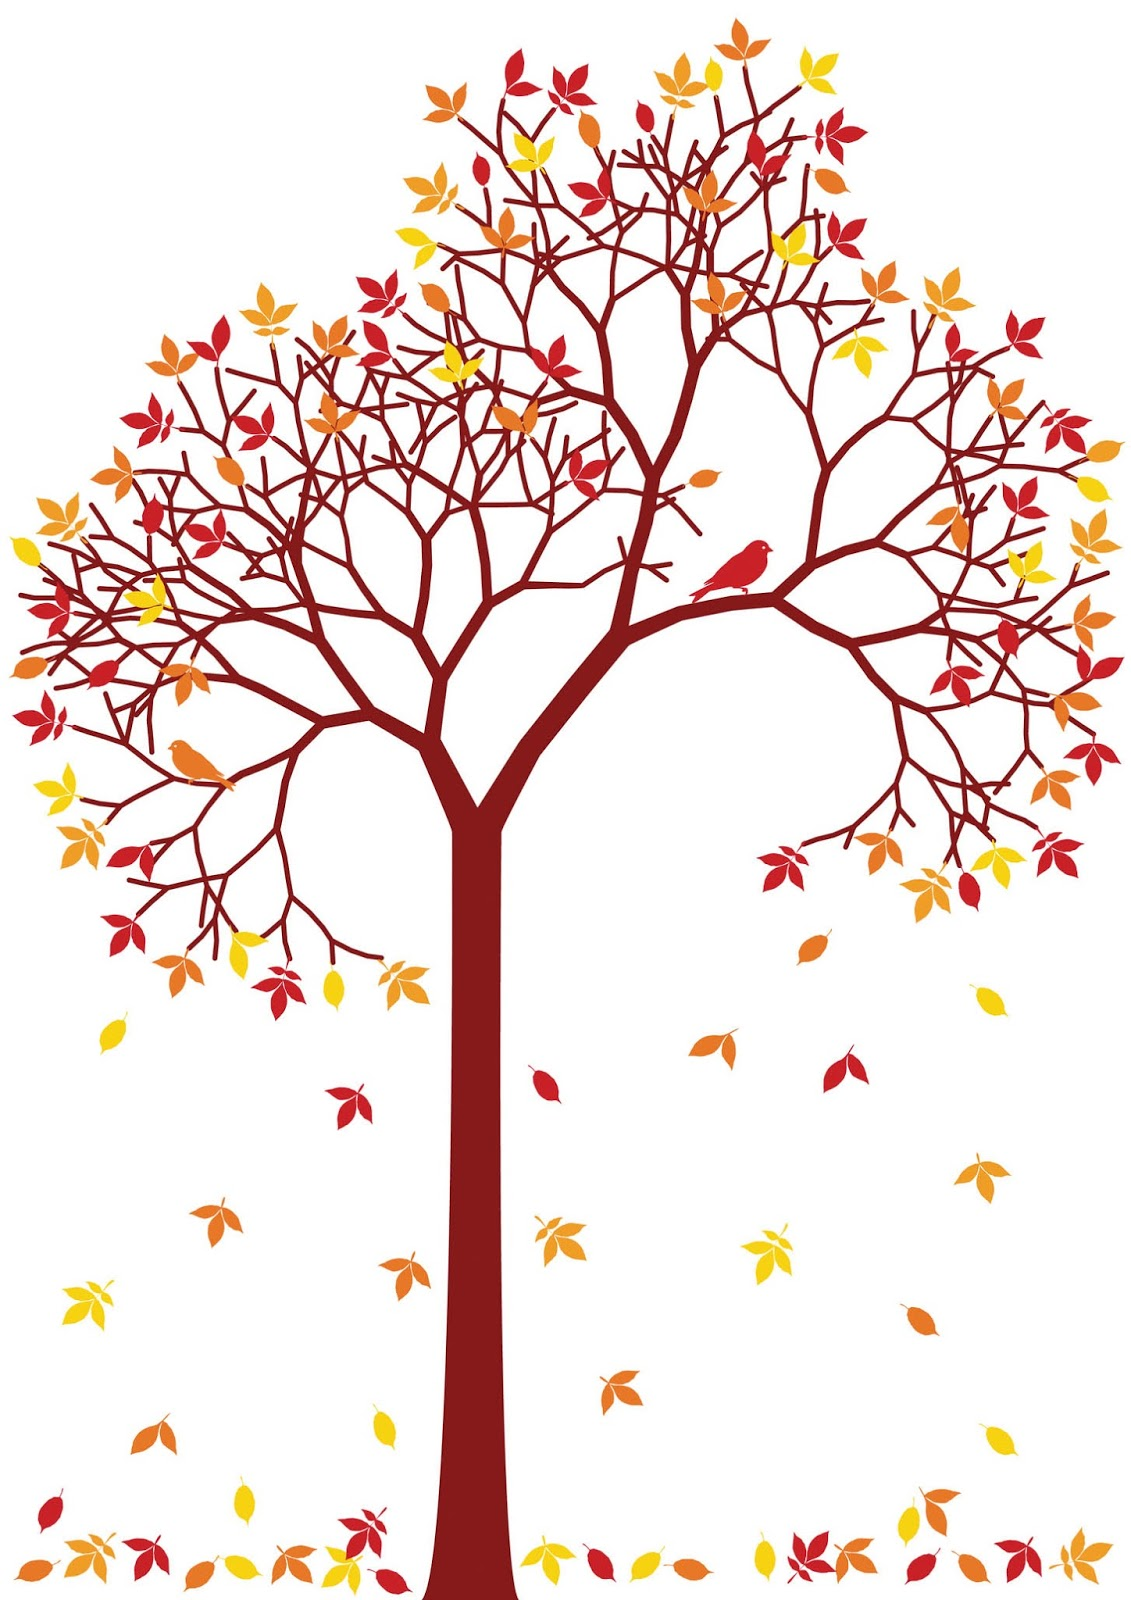 Branch clipart fall leaves Leaves Tree Crafthubs Leaf Fall